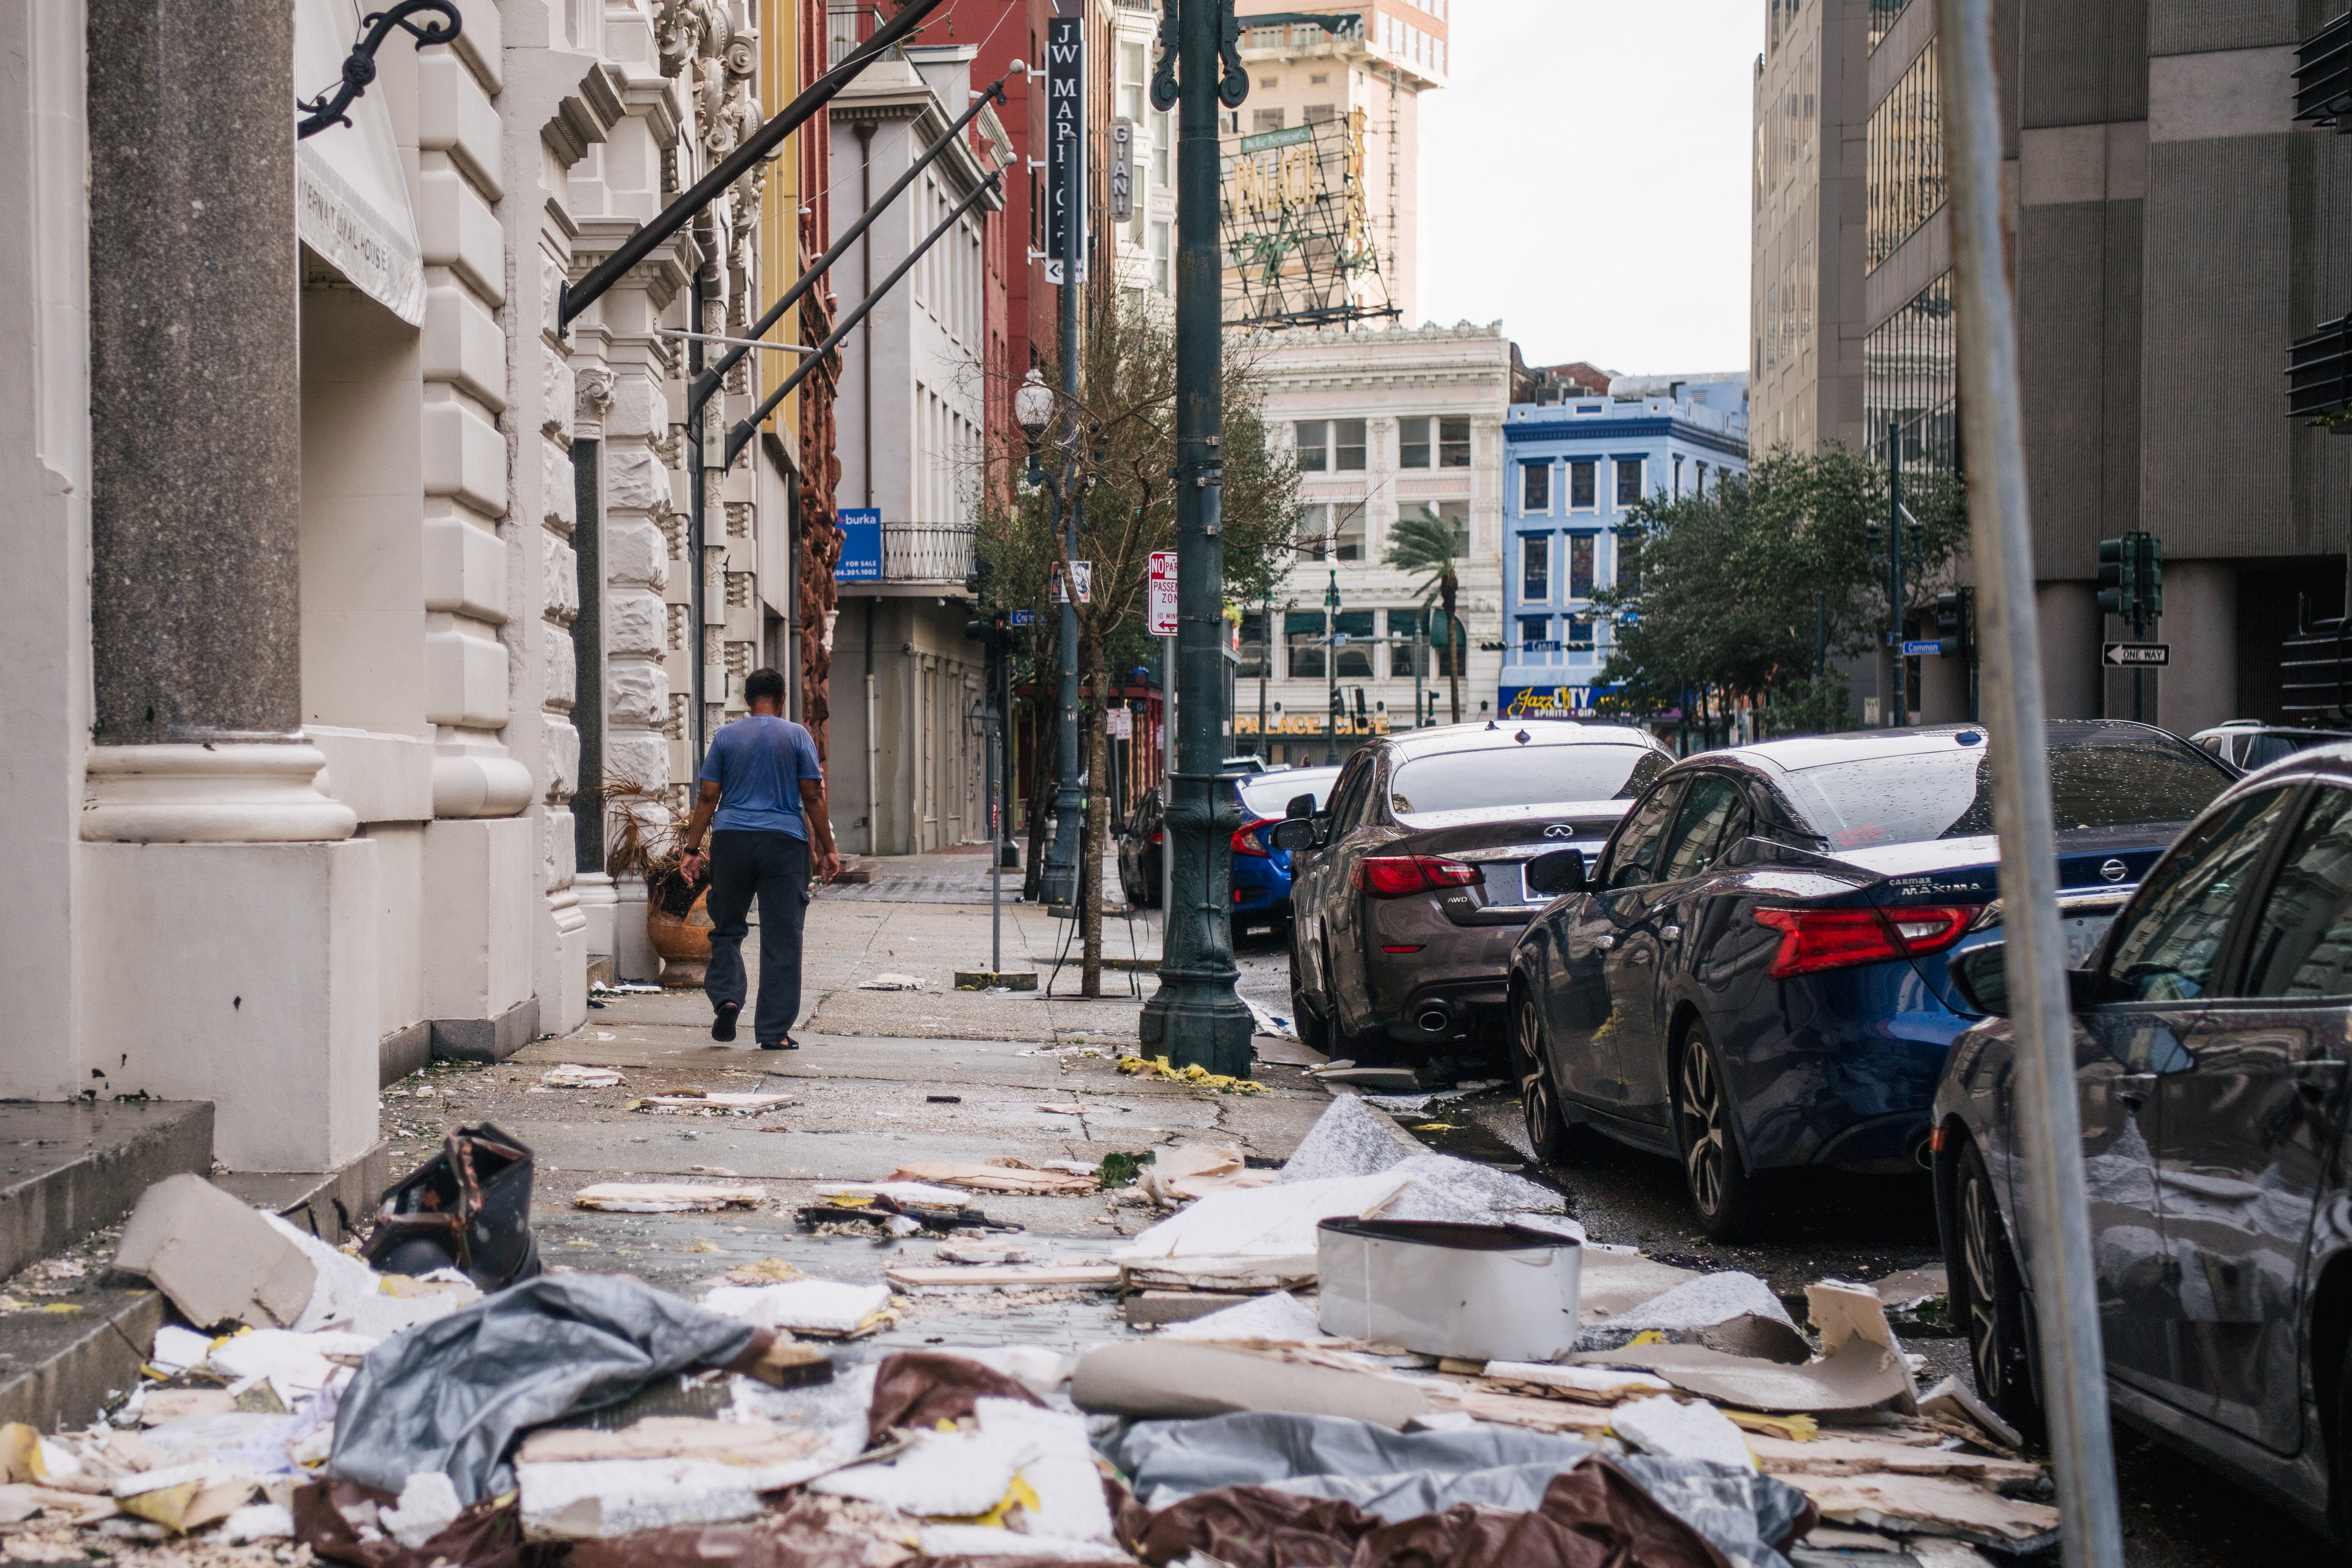 A person walks past debris on the sidewalk after Hurricane Ida passed through on August 30, 2021 in New Orleans, Louisiana. (Photo by Brandon Bell/Getty Images)